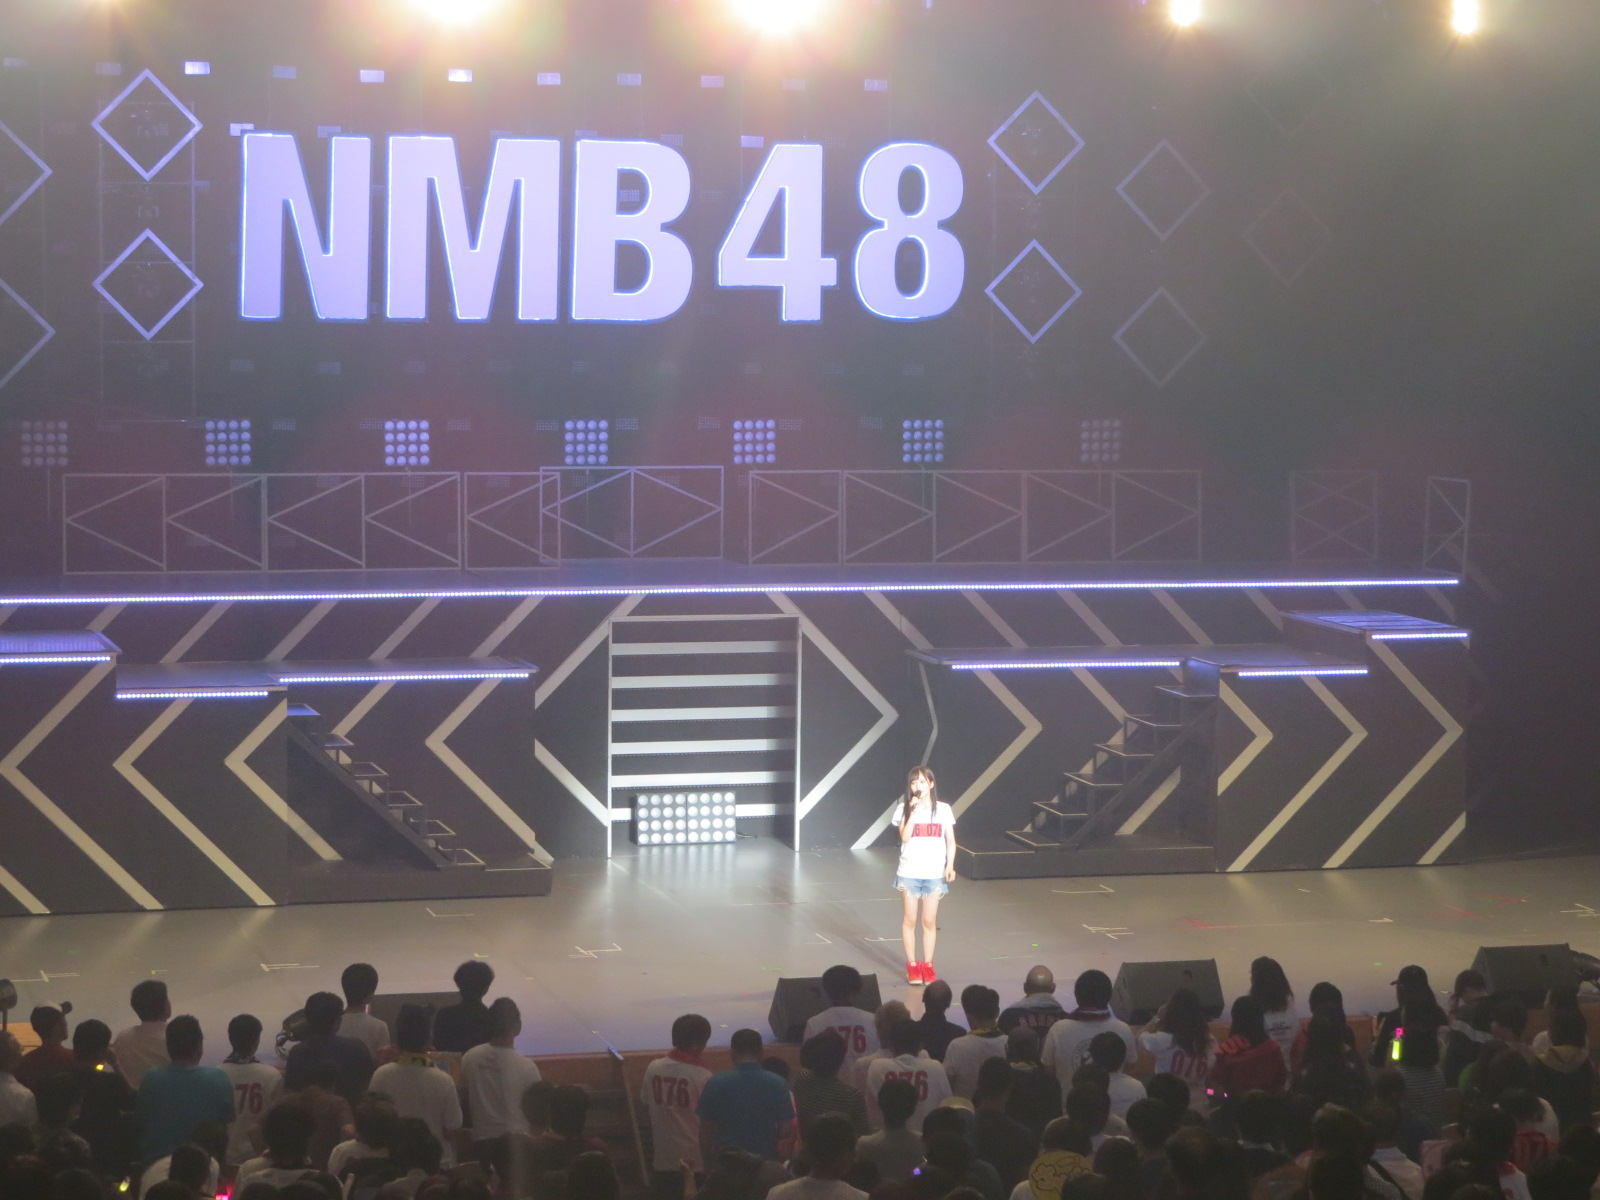 NMB48 LIVE TOUR 2018 in Summer・石川公演の画像-136